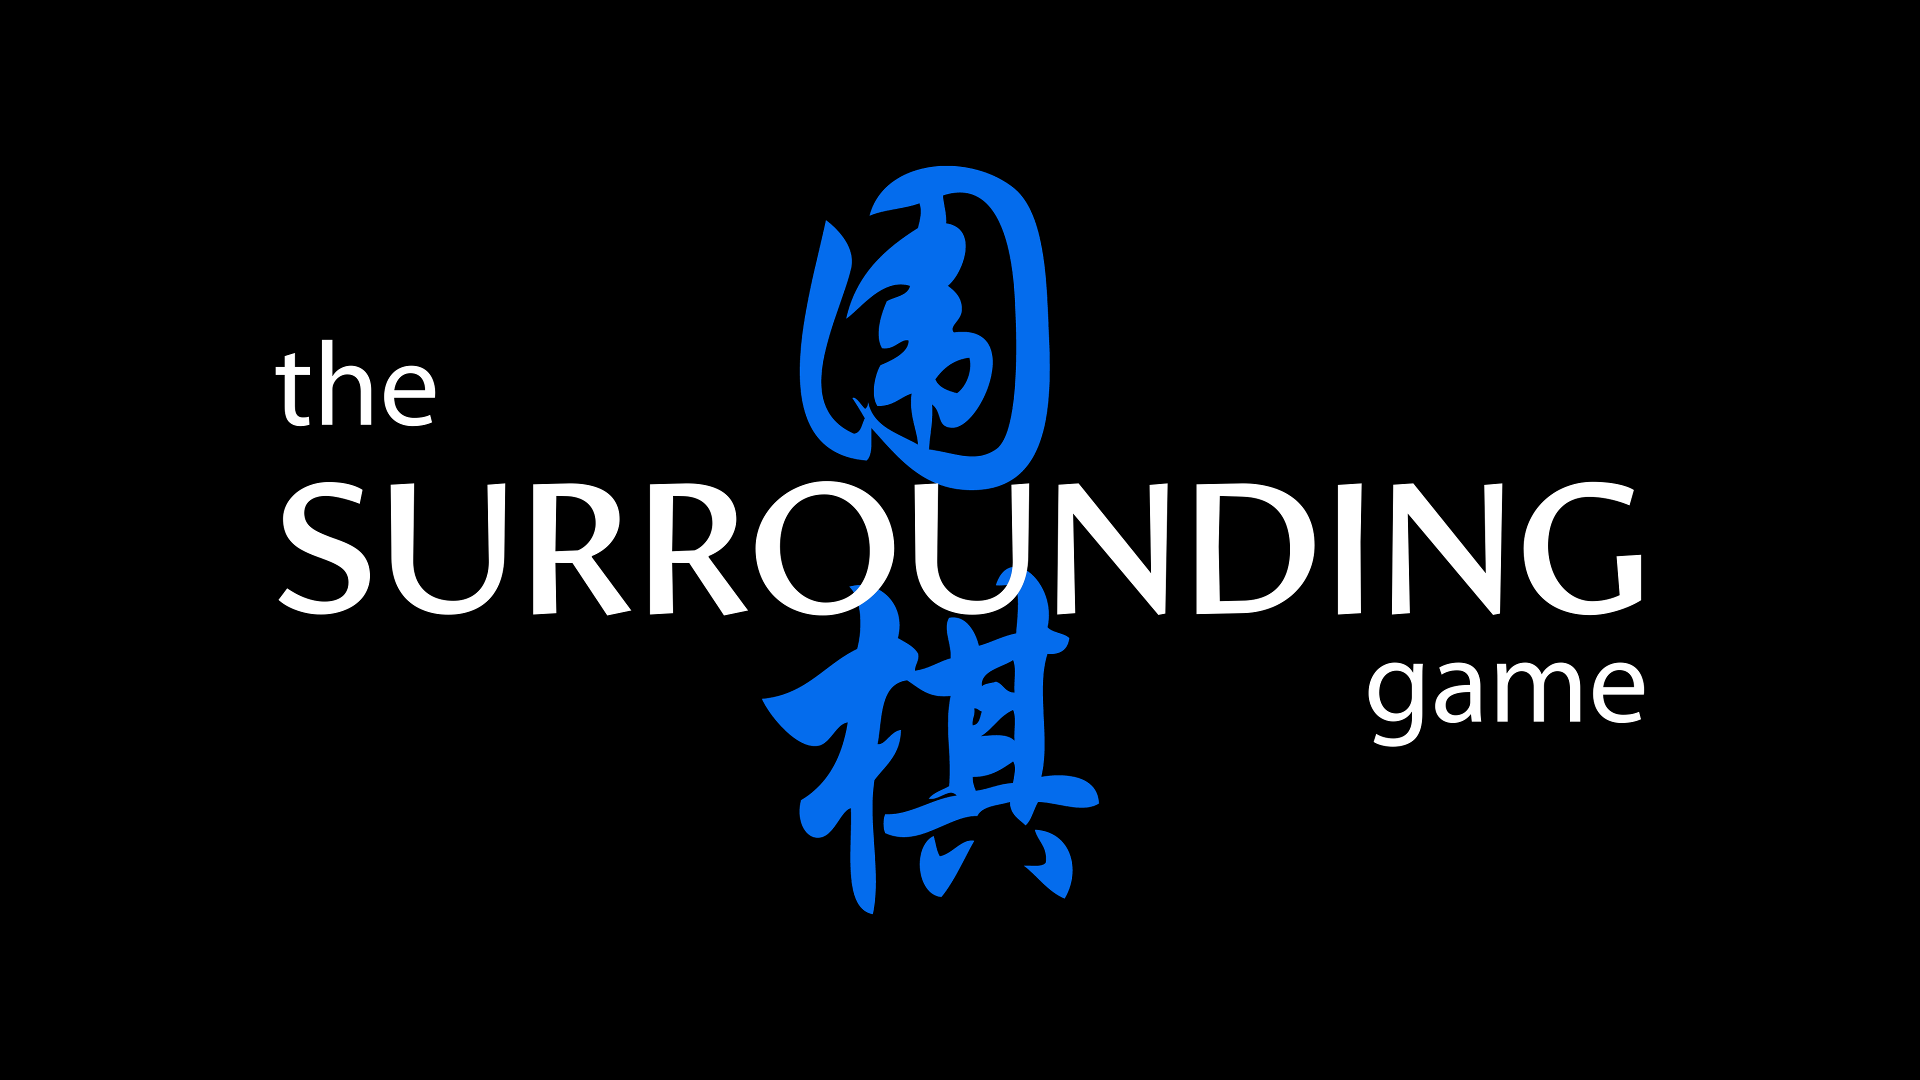 the surrounding game logo